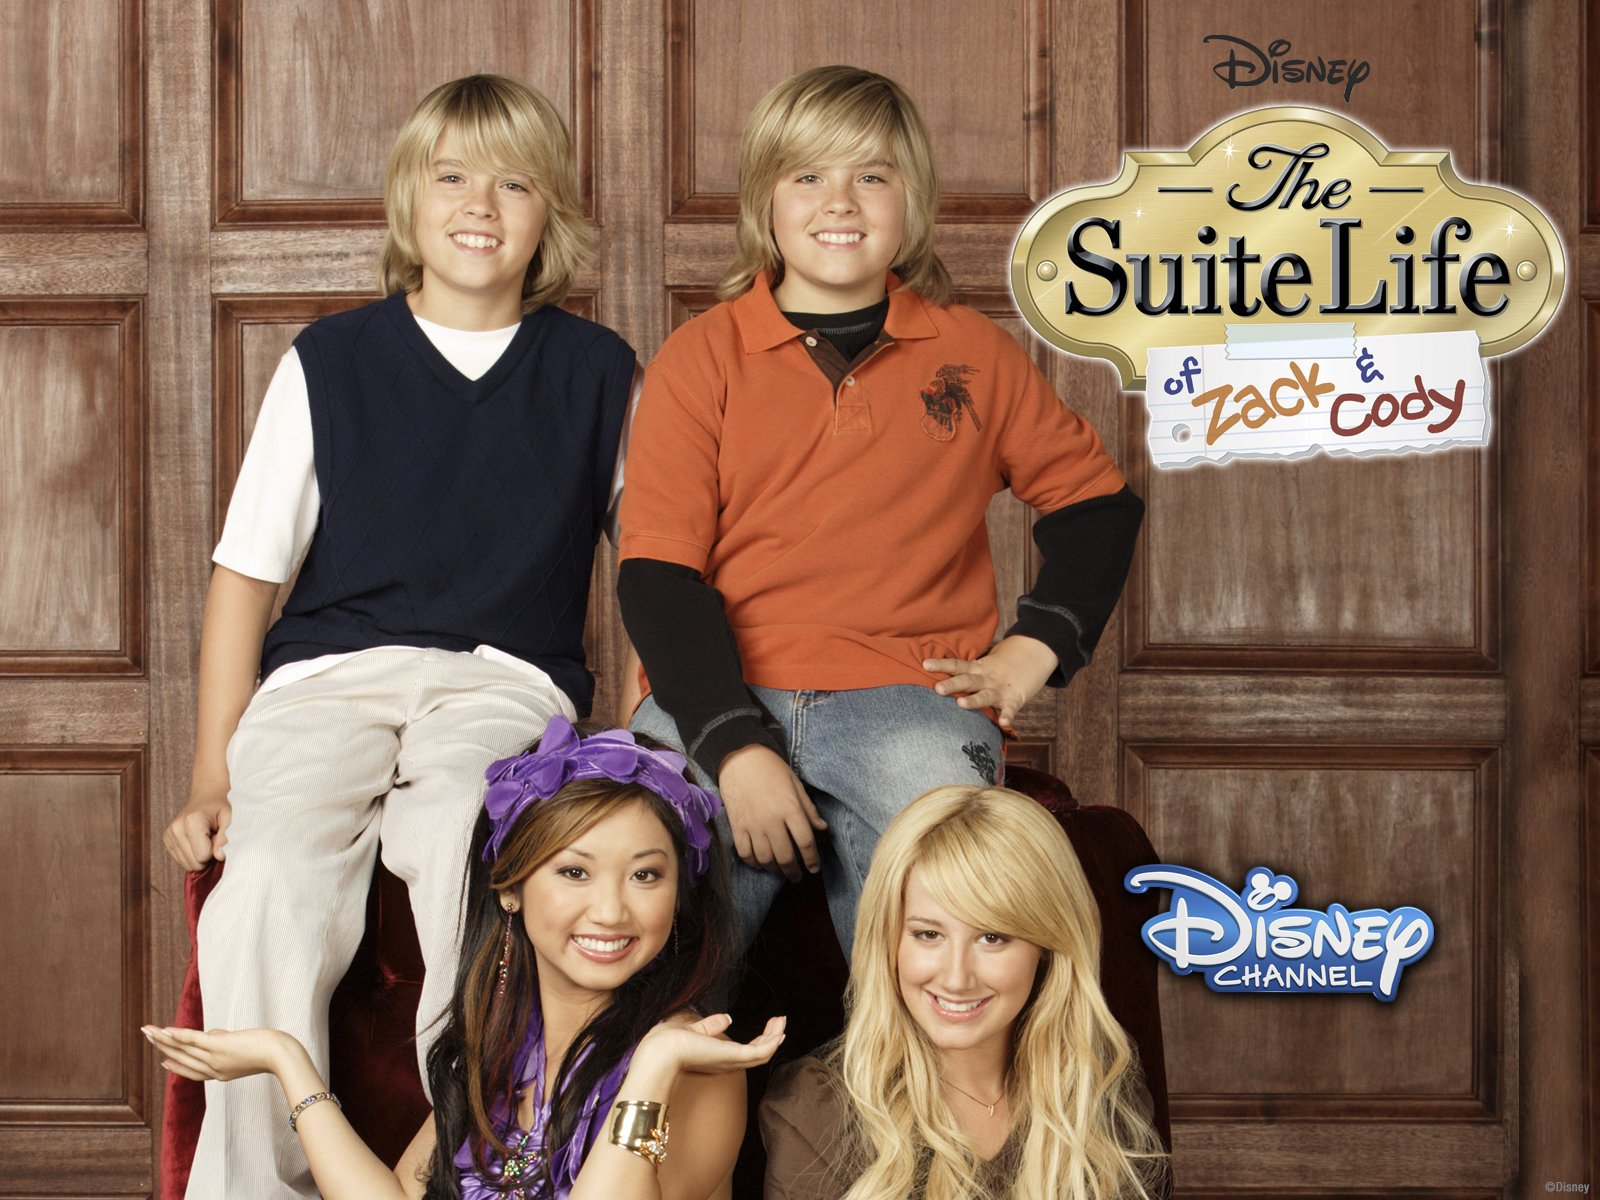 The suite life of zack and cody sex, cougar mature women movies